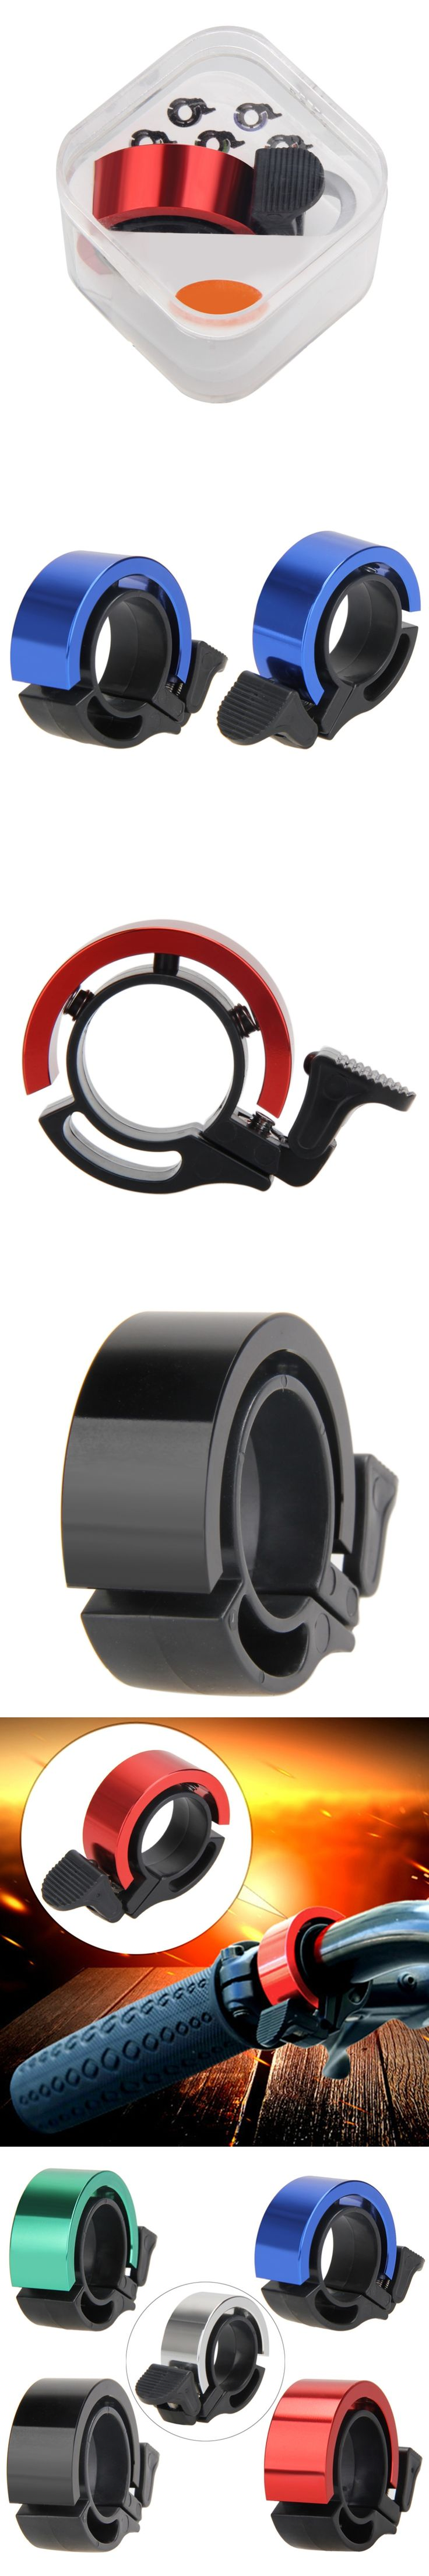 Cool Cycling Bike Bicycle Bell Handlebar Bells Ring Horn Sound Metal Alarm Safety For MTB Mountain Bike timbre bicicleta 5 color